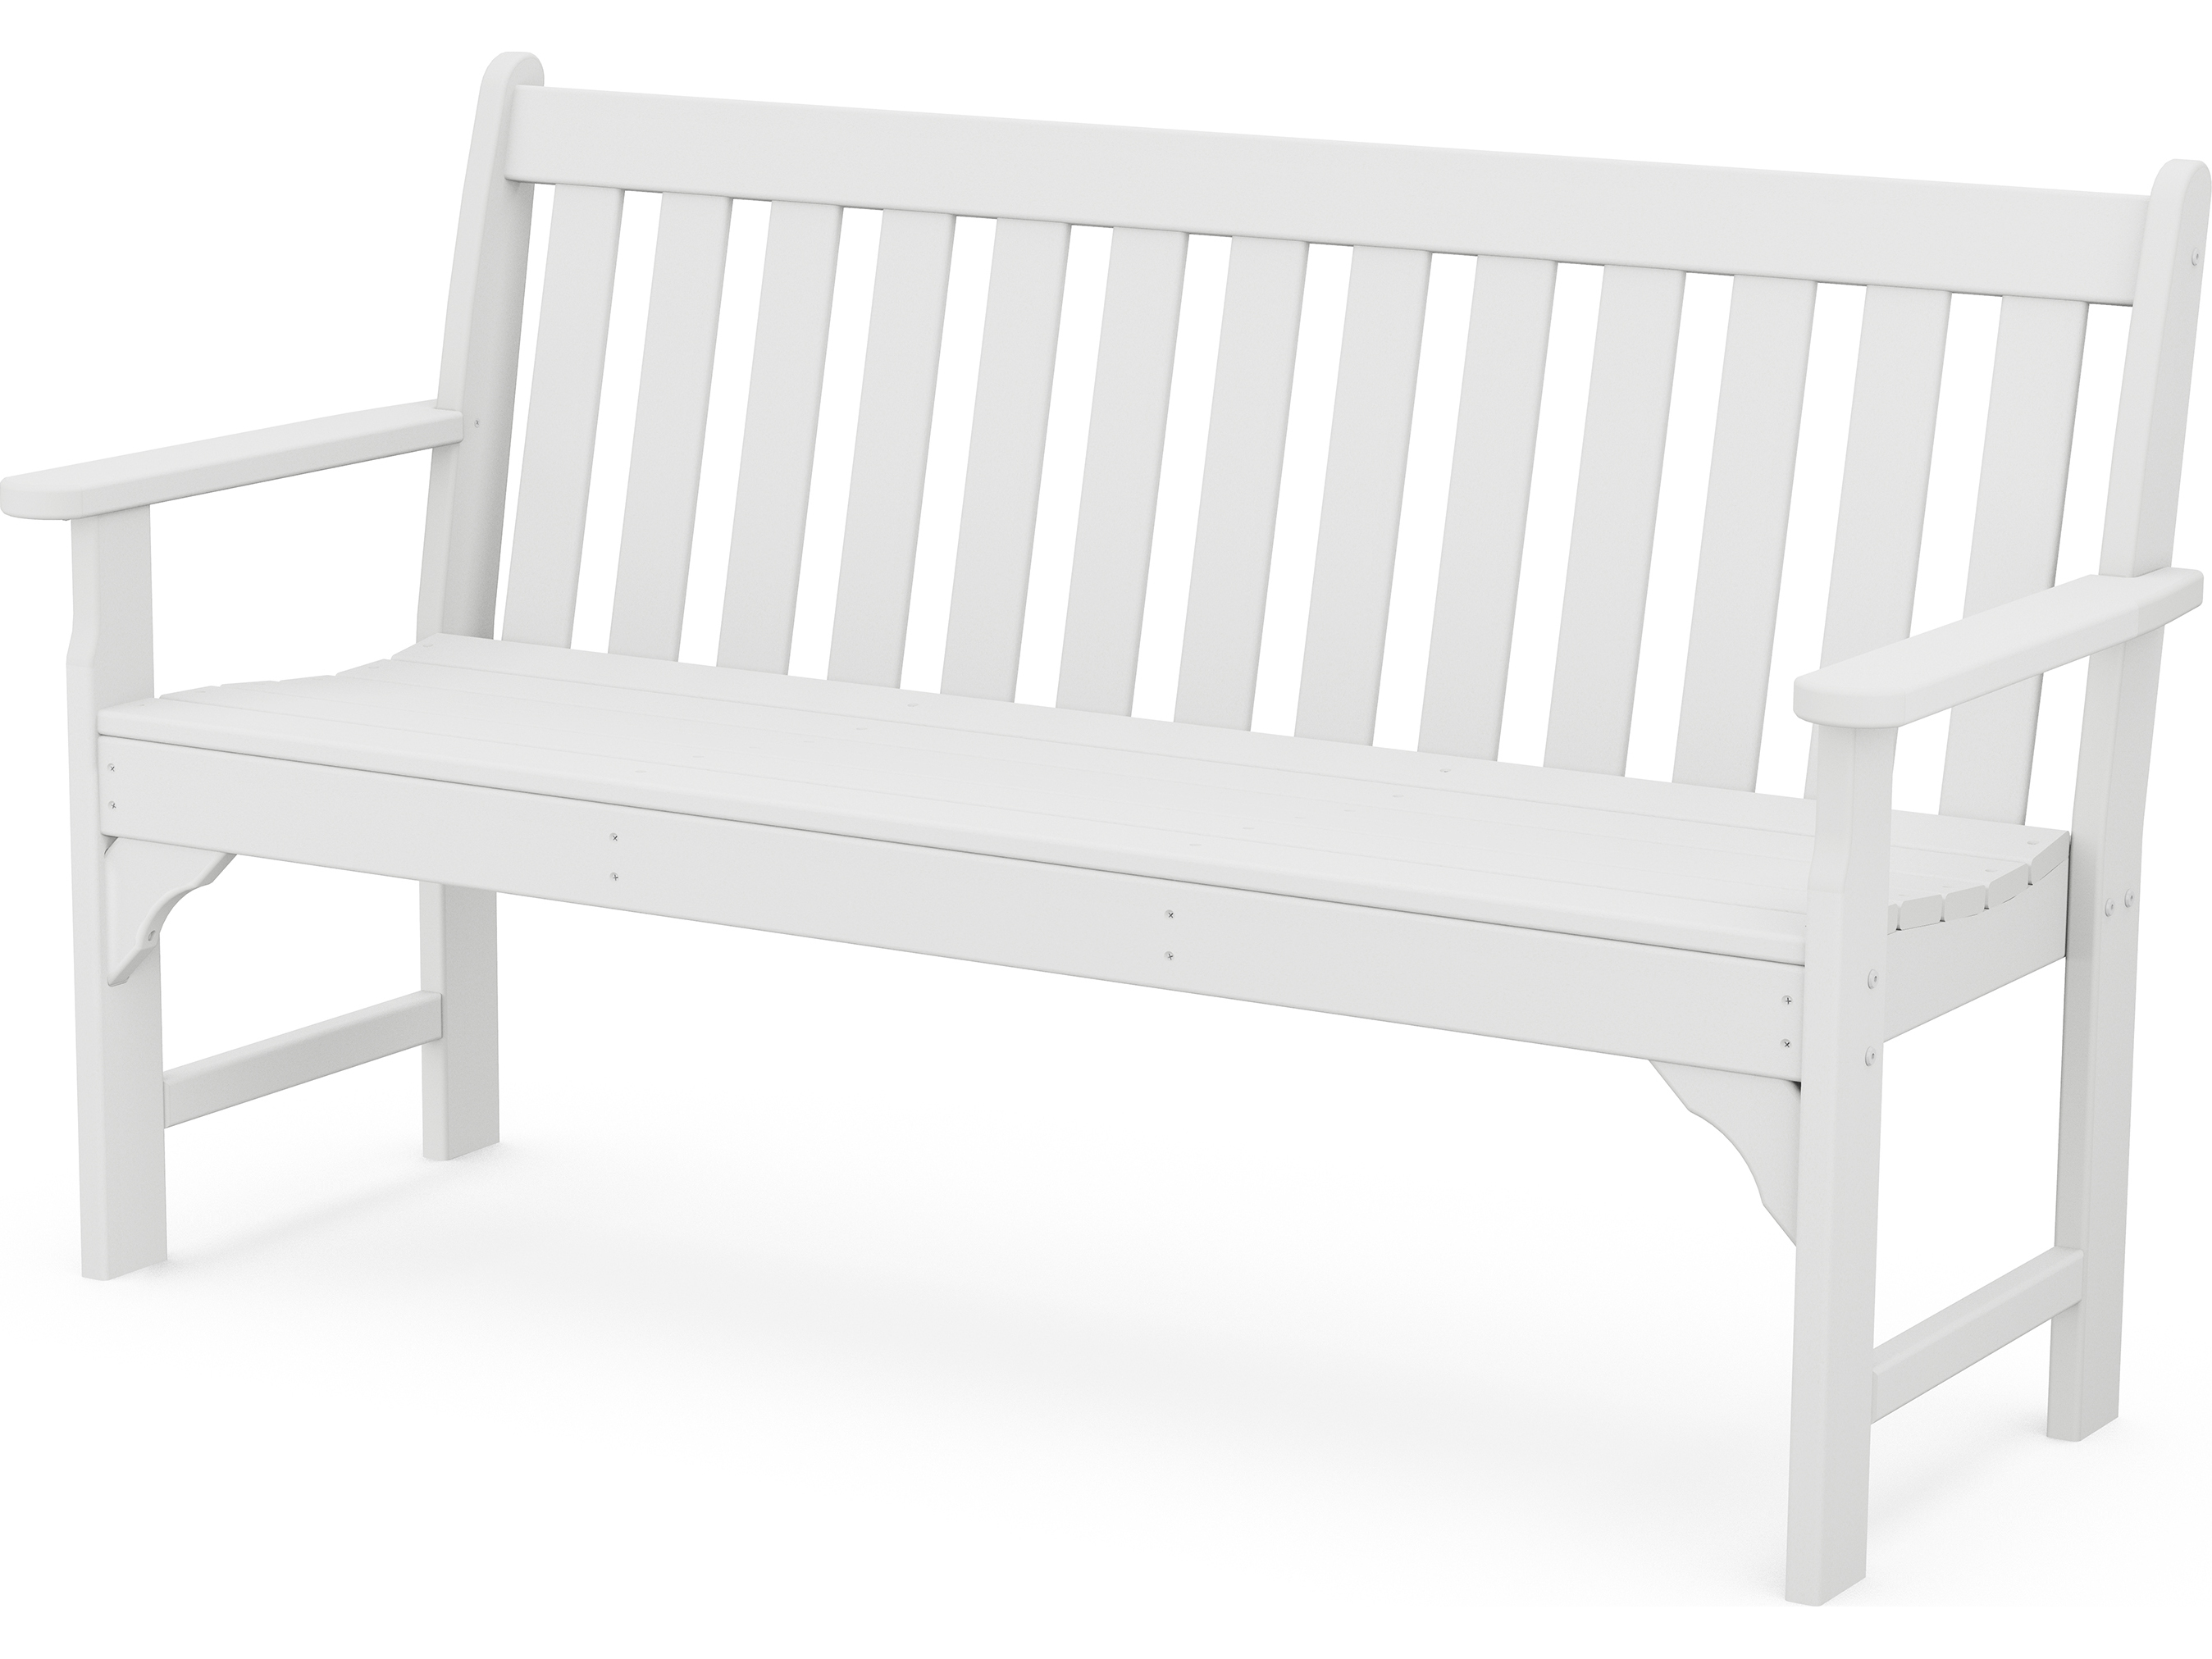 POLYWOOD Vineyard Recycled Plastic Bench